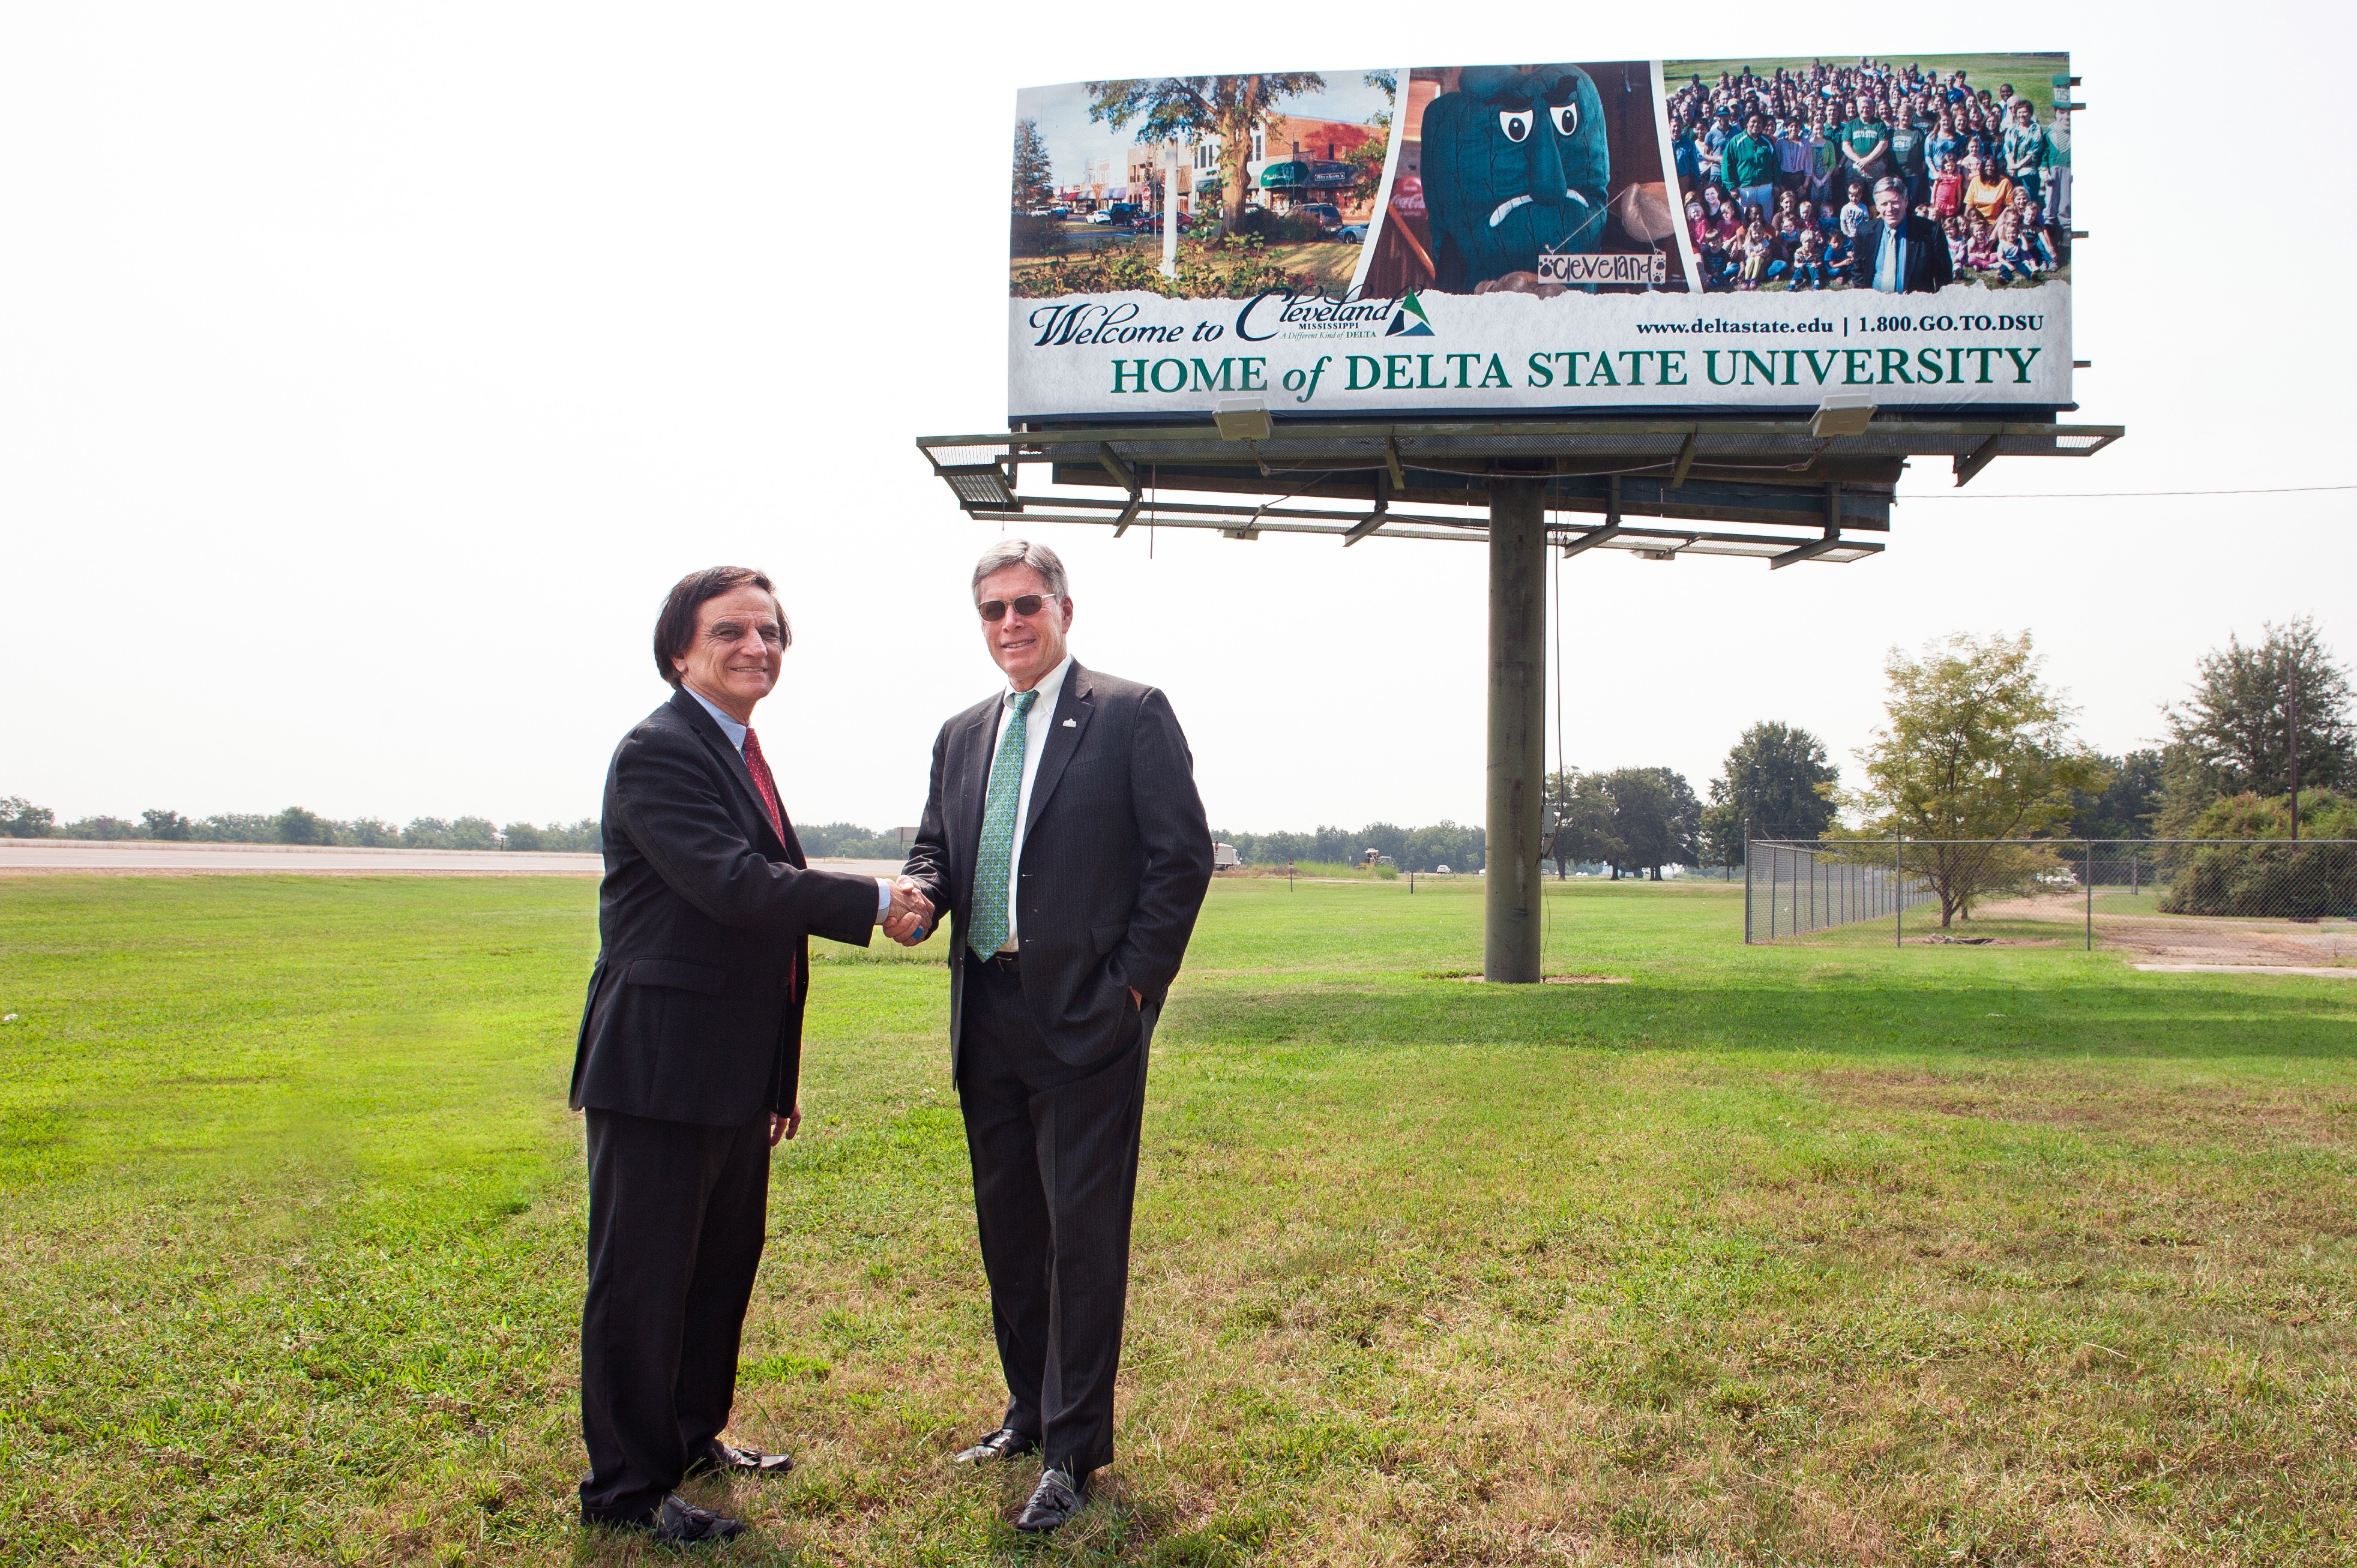 Dr. James Robinson (left) personally funded this new Delta State billboard on U.S. Highway 61 just north of Cleveland to show his support for President William N. LaForge and the university.